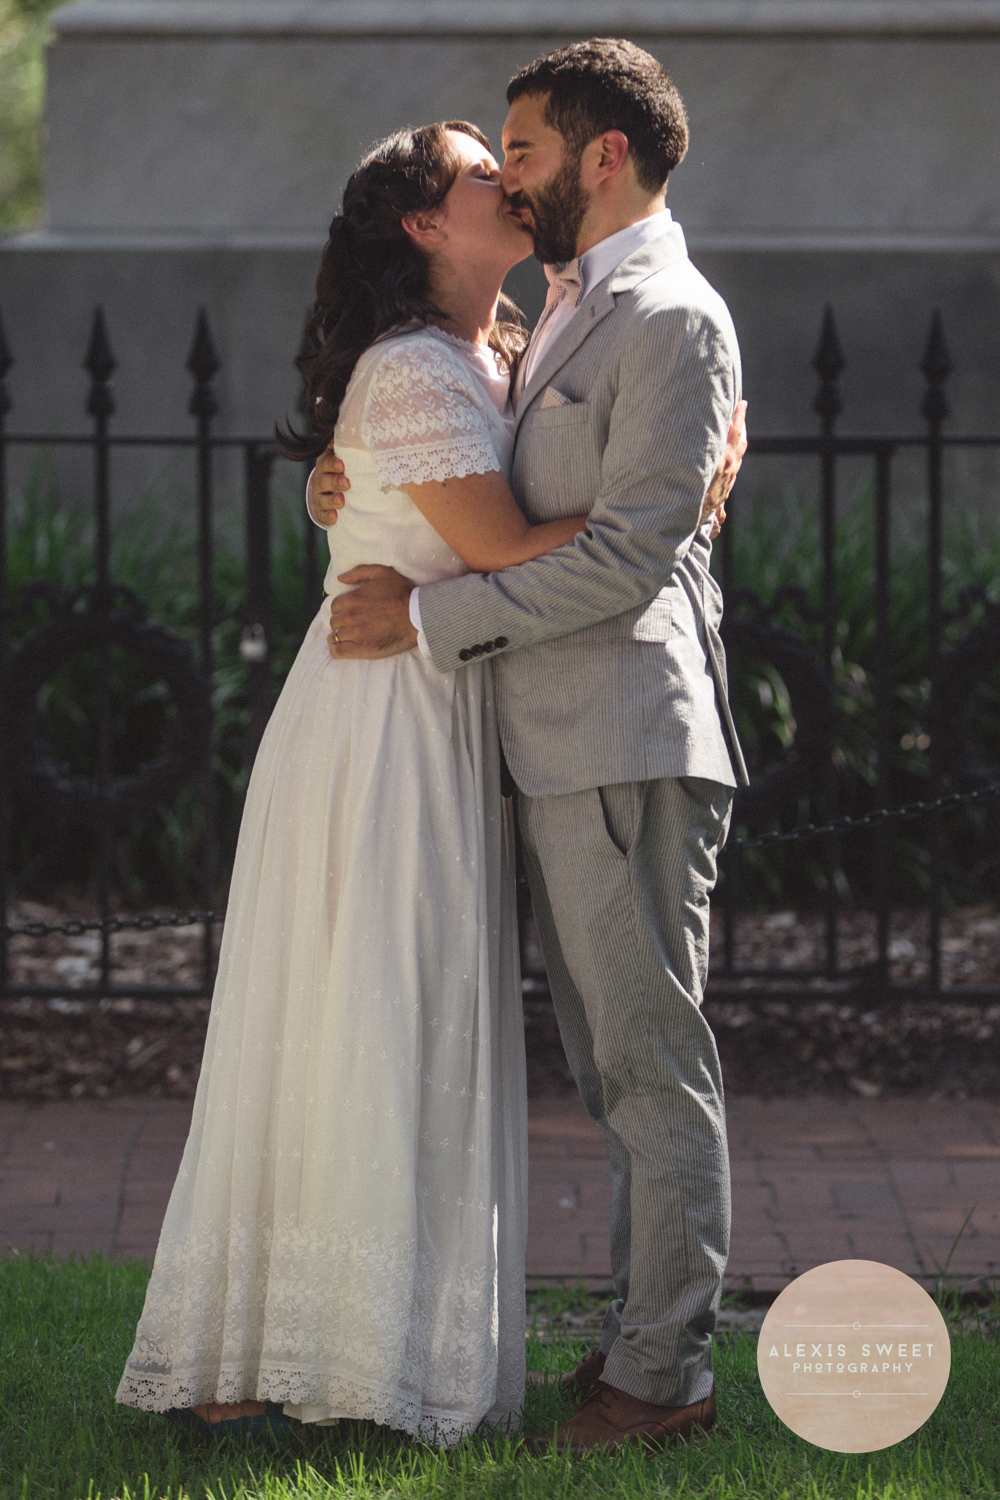 alexis-sweet-photography-ivory-and-beau-bridal-boutique-monterey-square-wedding-savannah-wedding-planner-savannah-weddings-historic-savannah-wedding-vintage-wedding-peach-wedding-southern-vintage-wedding-savannah-bridal-boutique-6.jpg